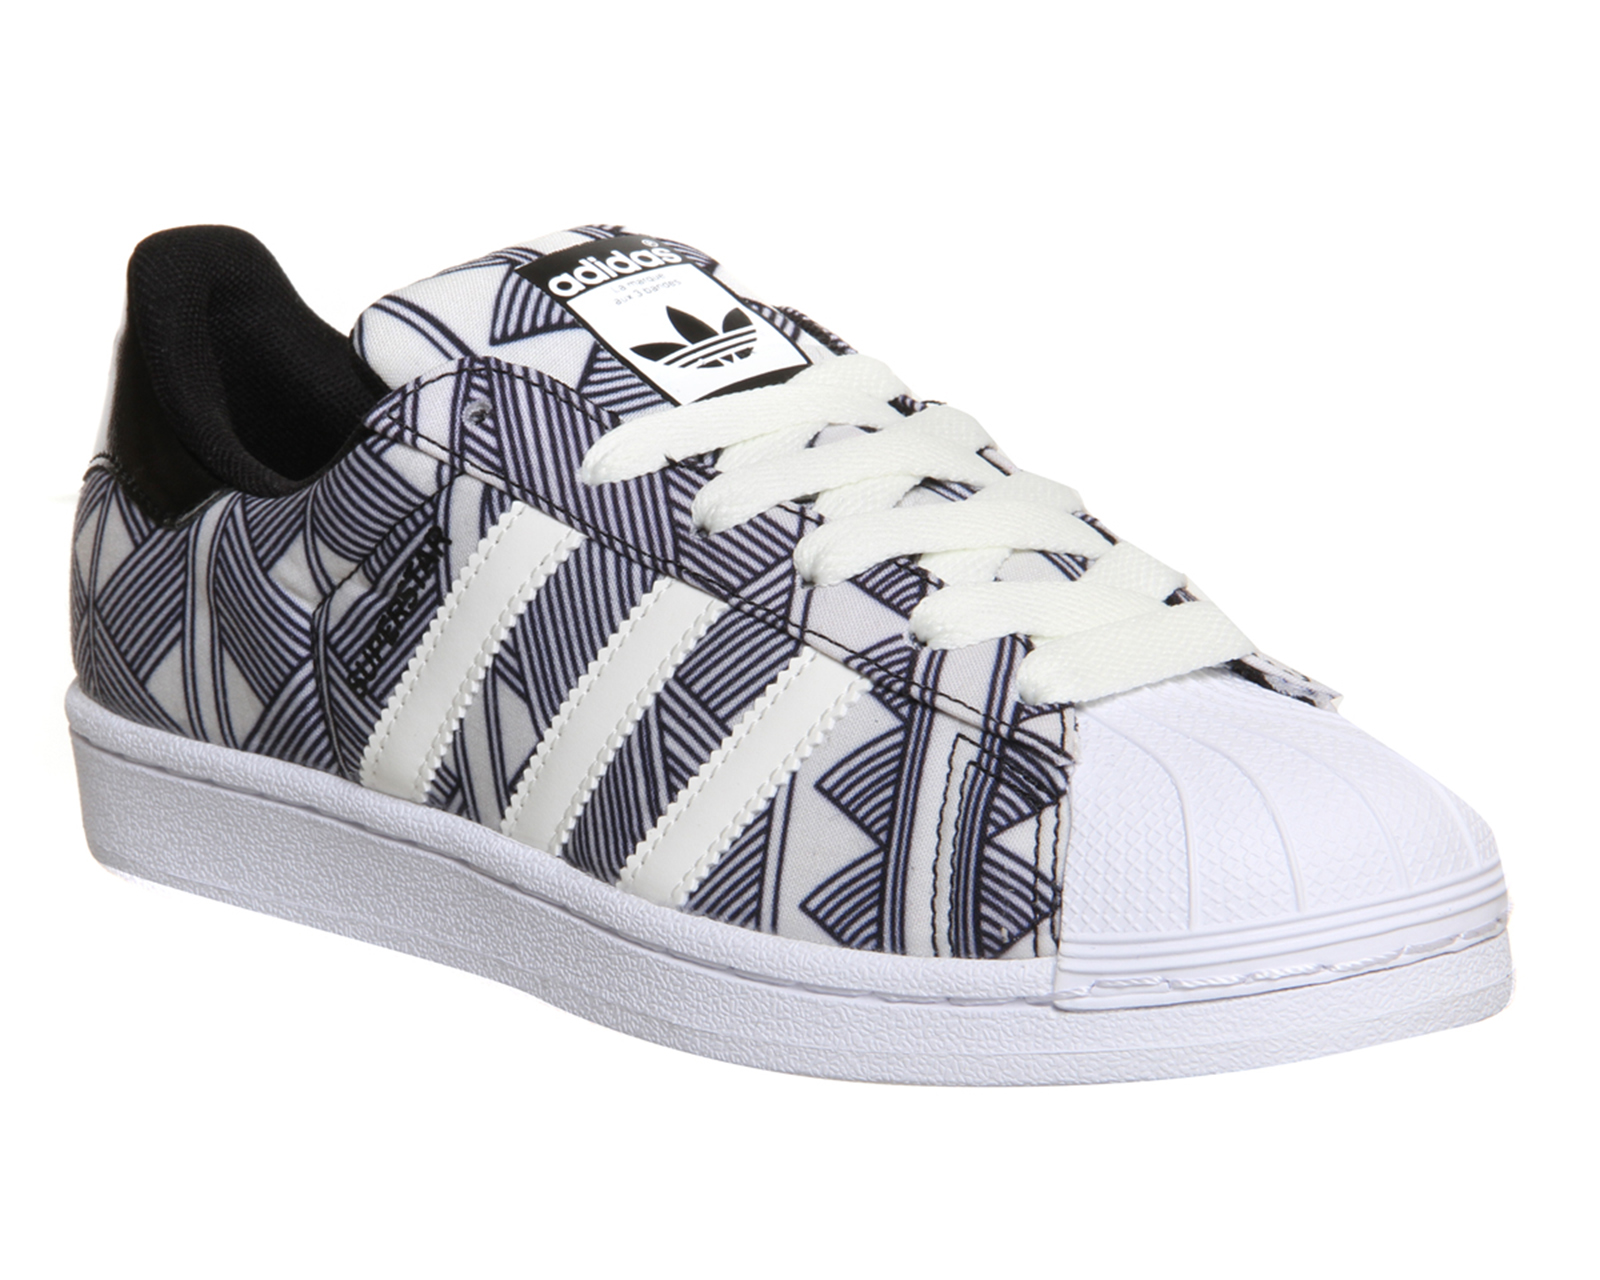 Adidas Originals Superstar 2, Adidas Shipped Free at Zappos